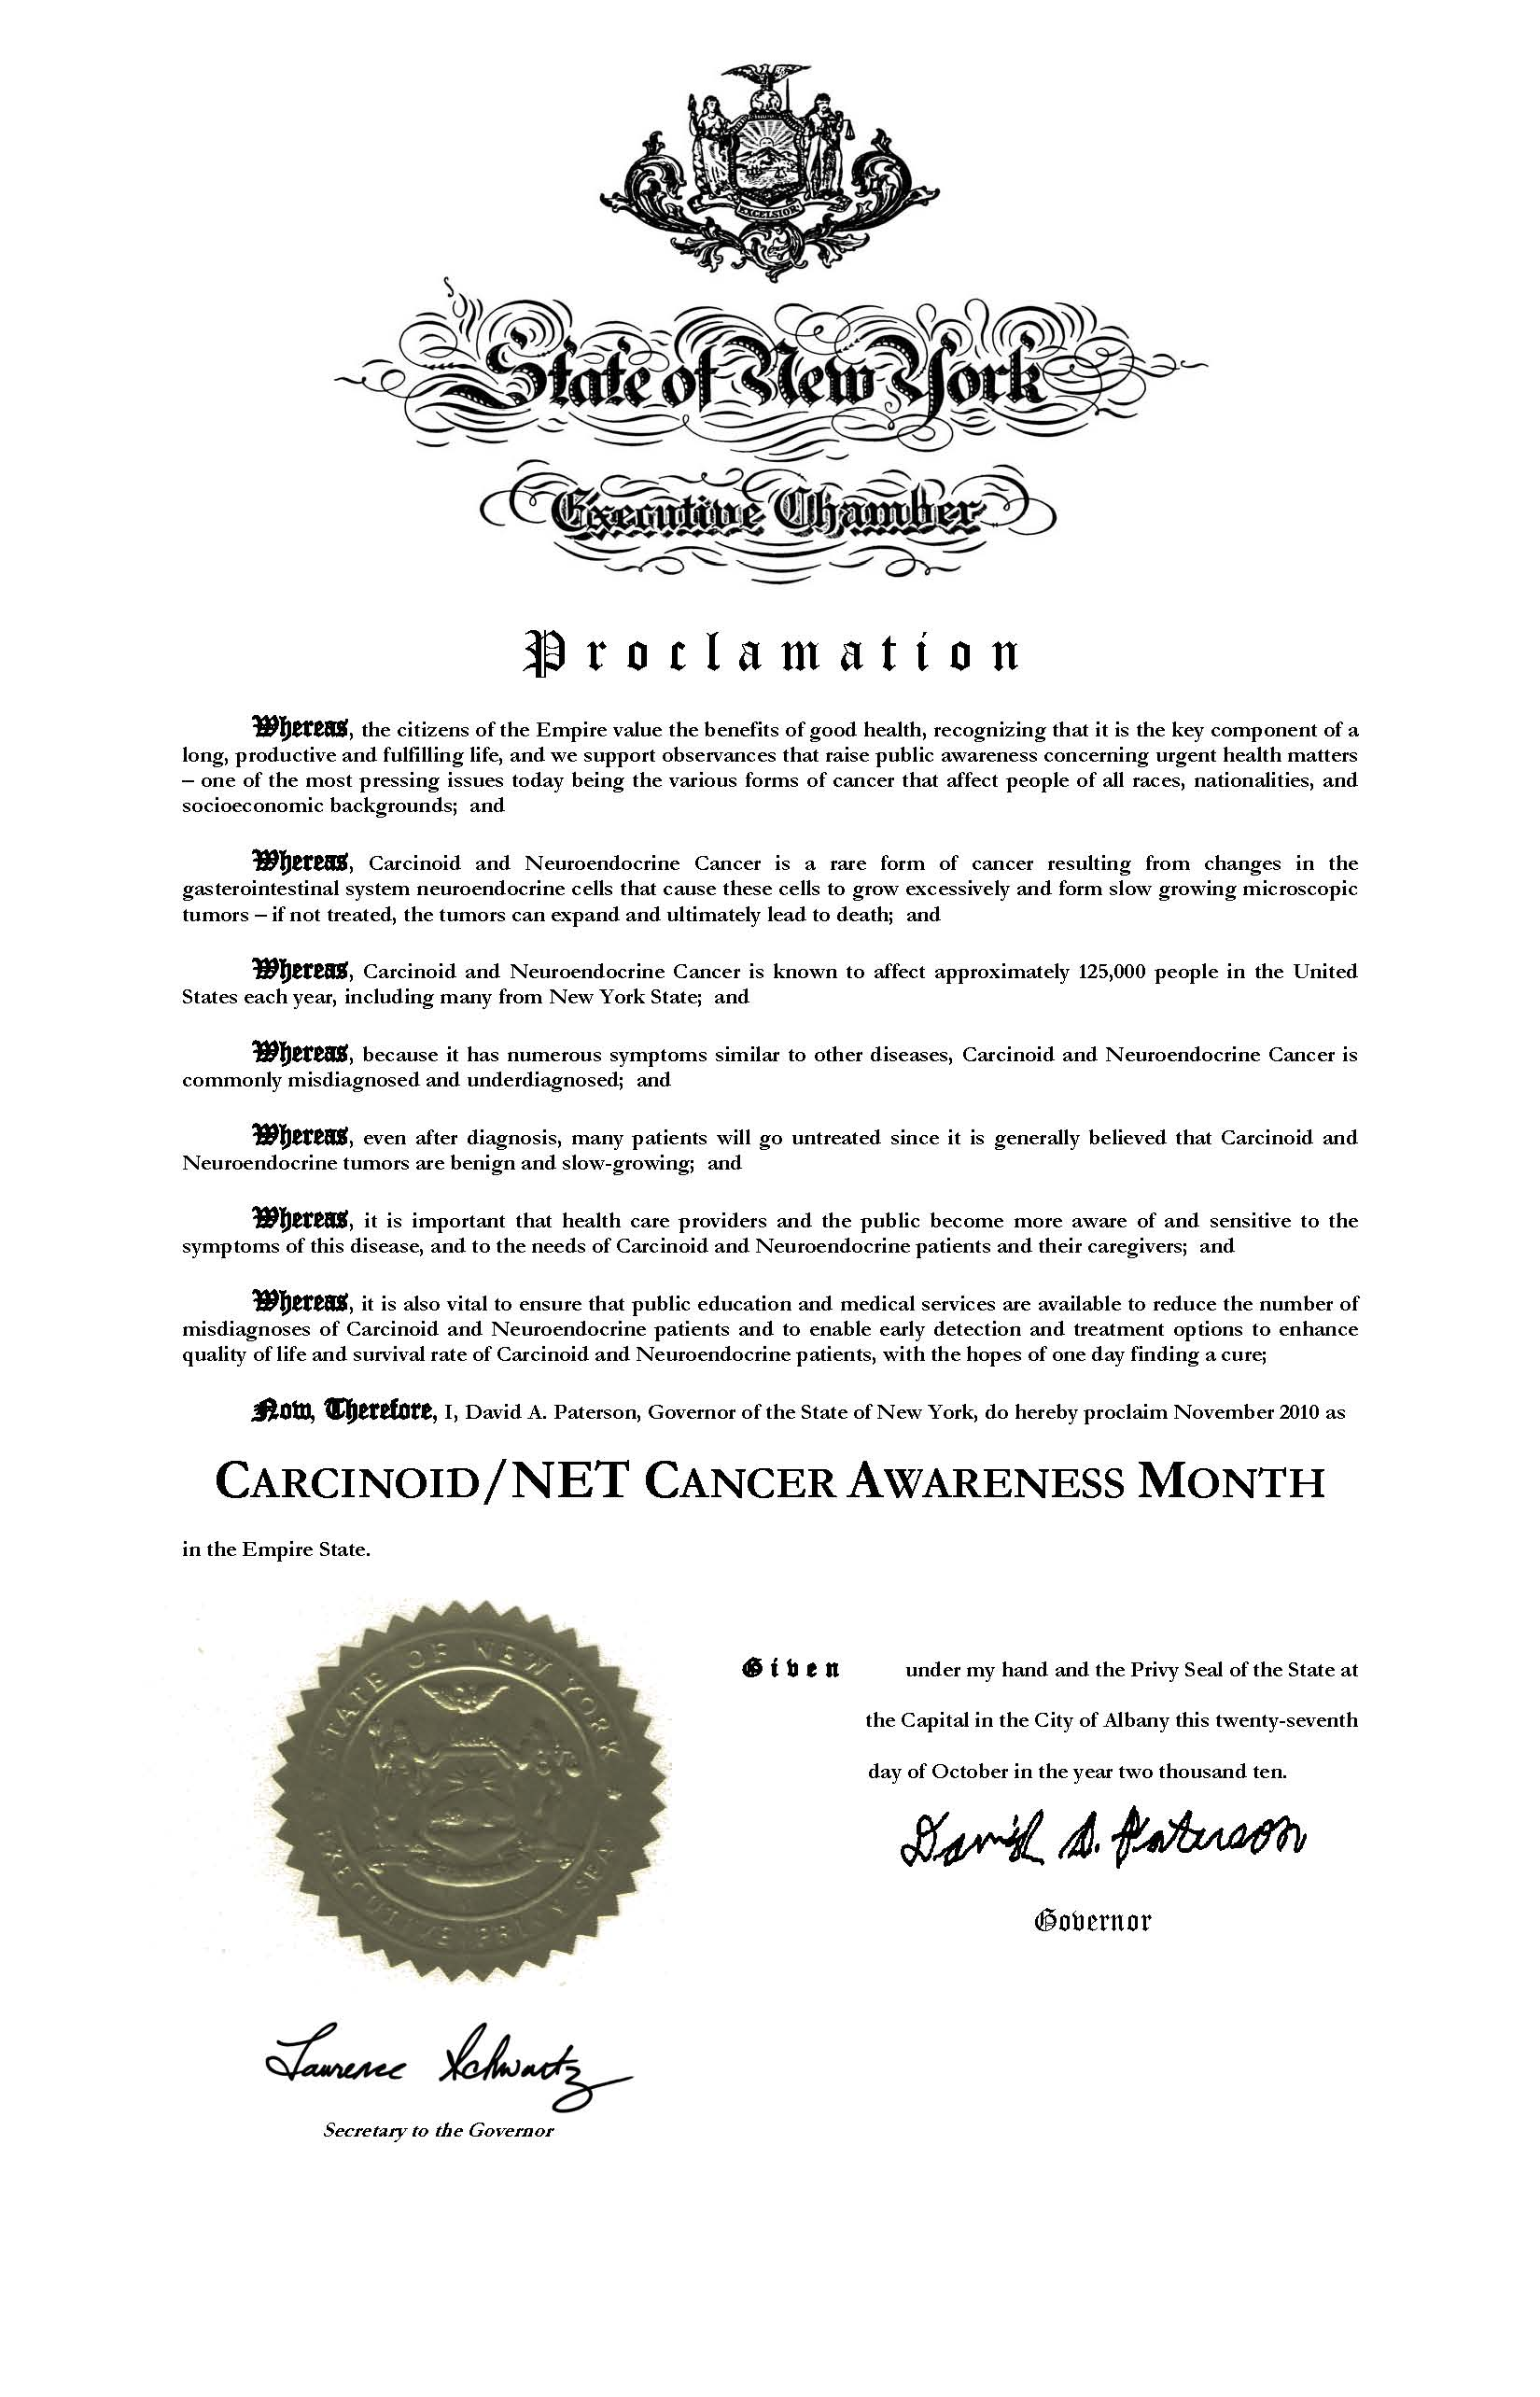 Carcinoid Awareness Month Proclamation in New York State